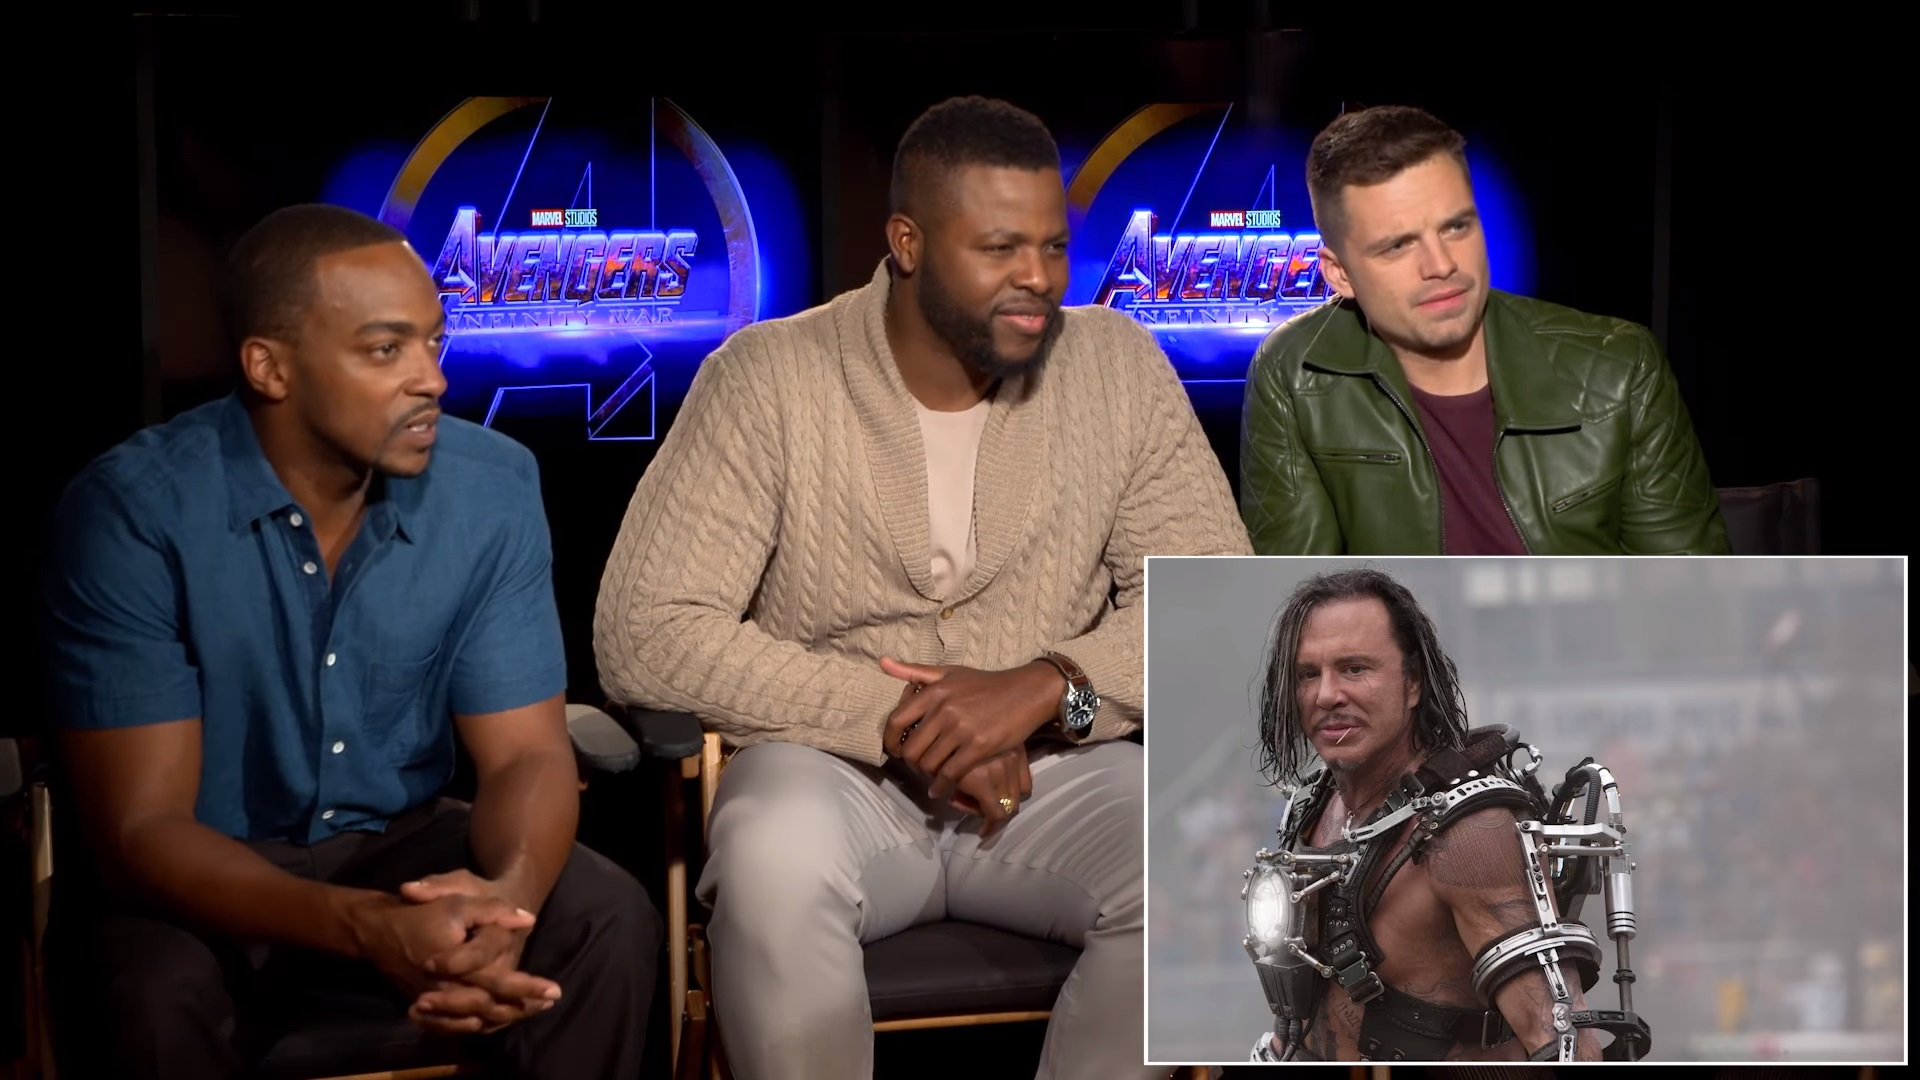 watch-the-avengers-infinity-war-cast-try-to-guess-the-names-of-marvel-movie-villains-social.jpg